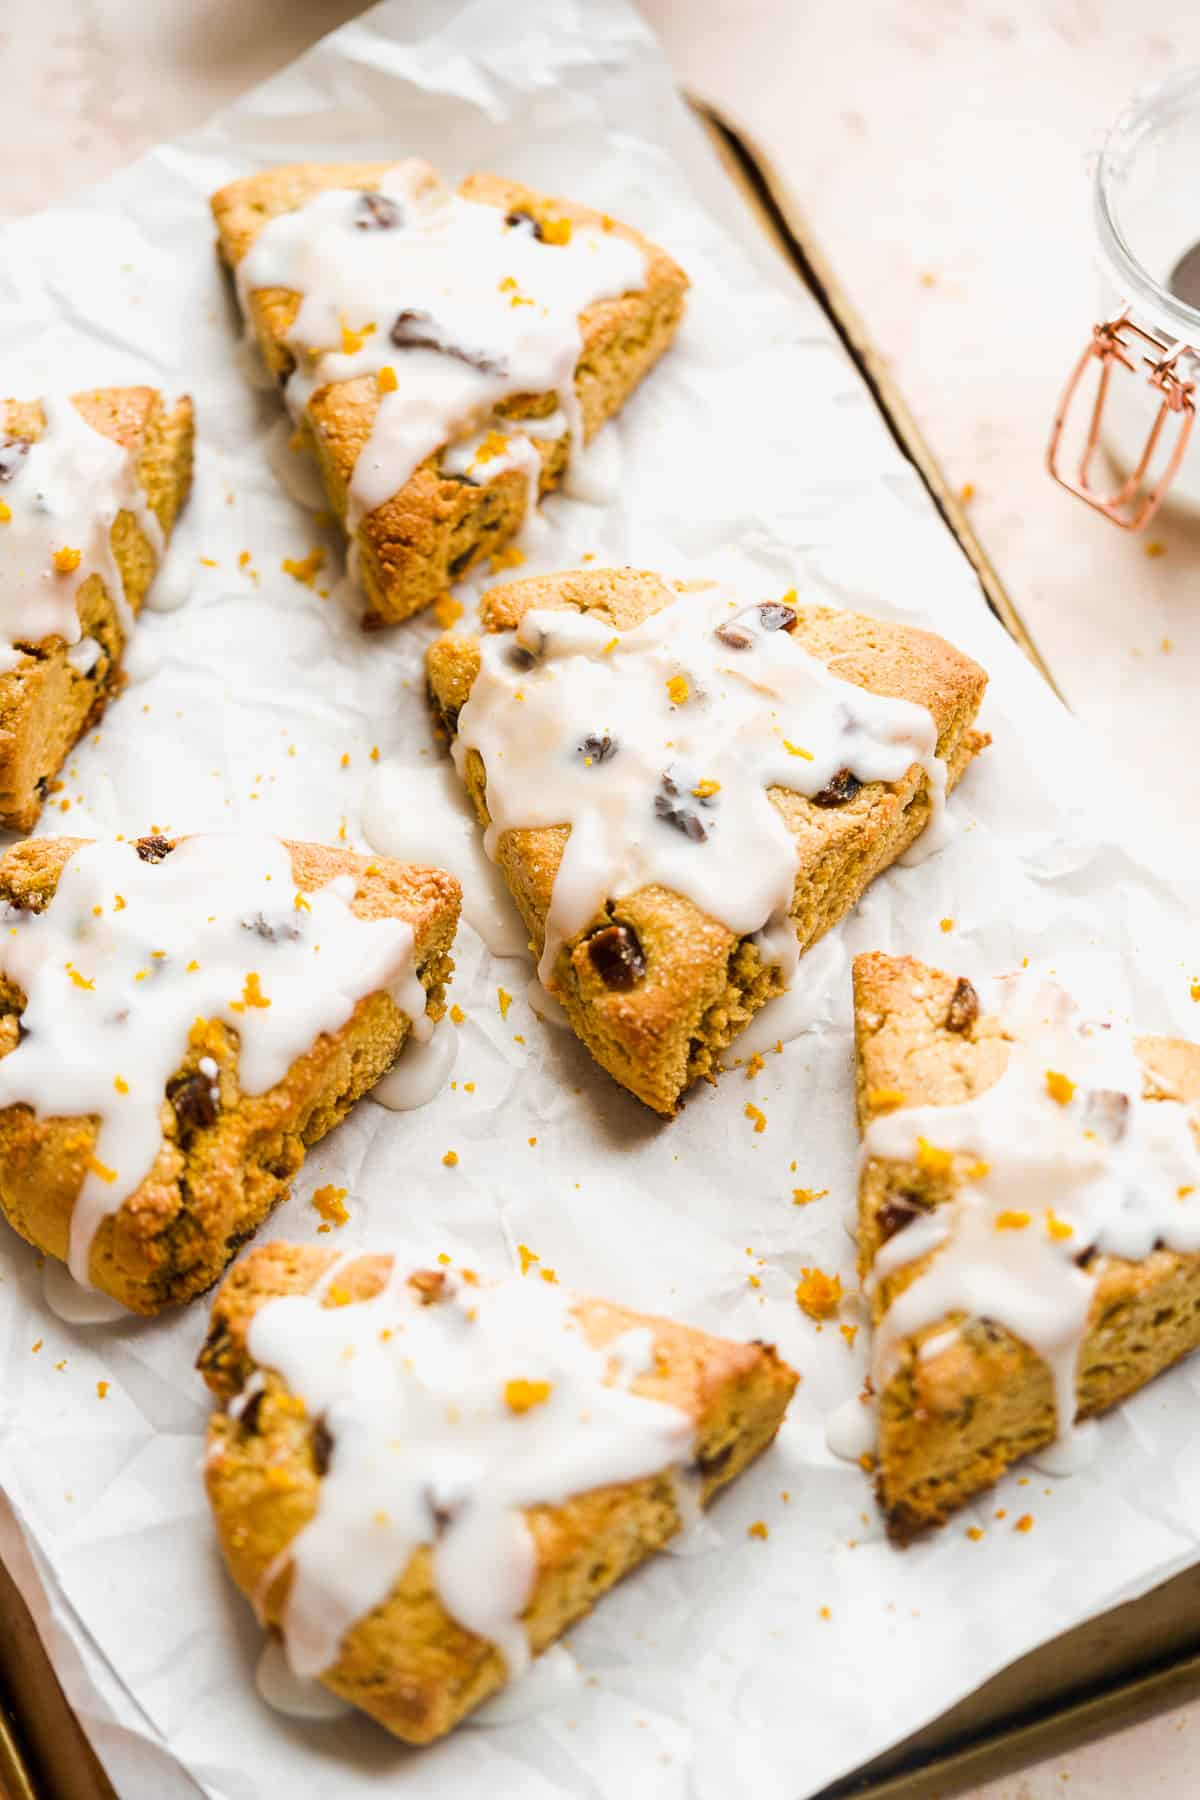 Golden scones with white icing on white parchment paper on top of a baking sheet.